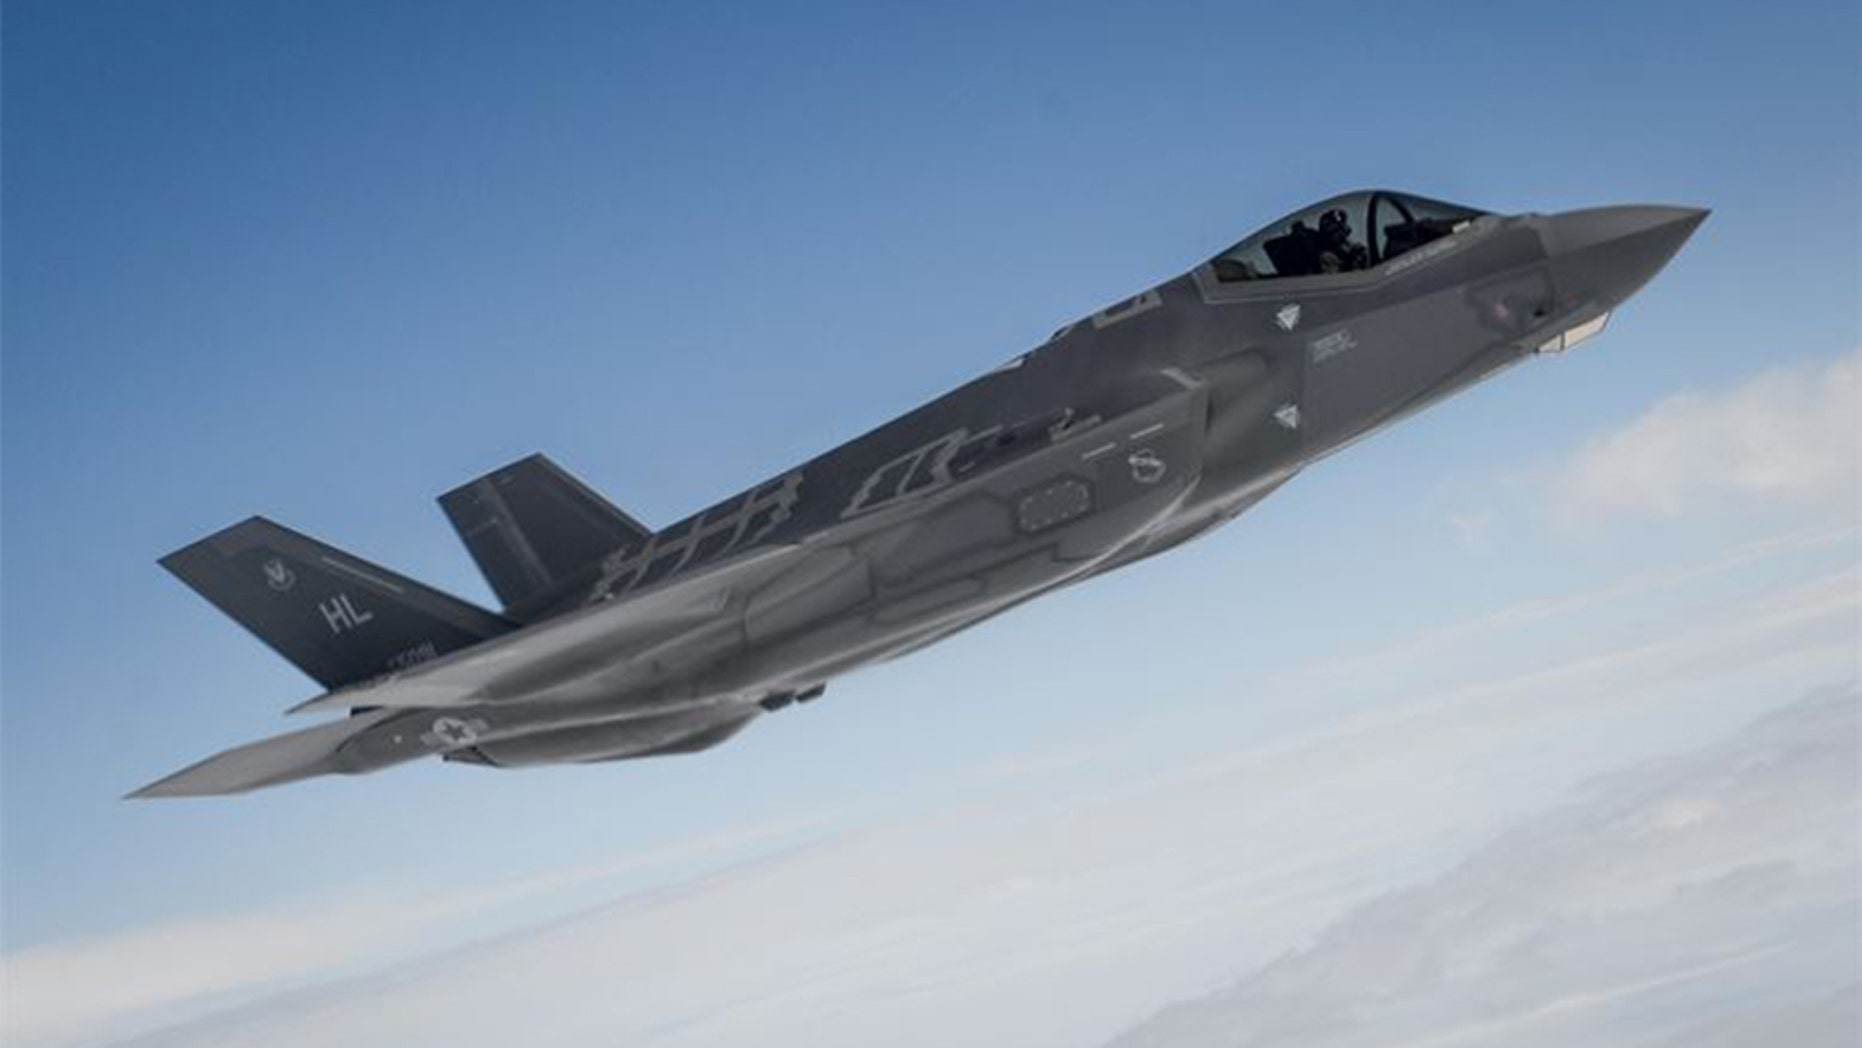 Westlake Legal Group F35A Air Force's F-35A deploys to Middle East for first time Oriana Pawlyk Military.com fox-news/world/world-regions/middle-east fox-news/us/military/air-force fnc/world fnc e507a5bb-cc8f-5544-bce7-87612ce71973 article